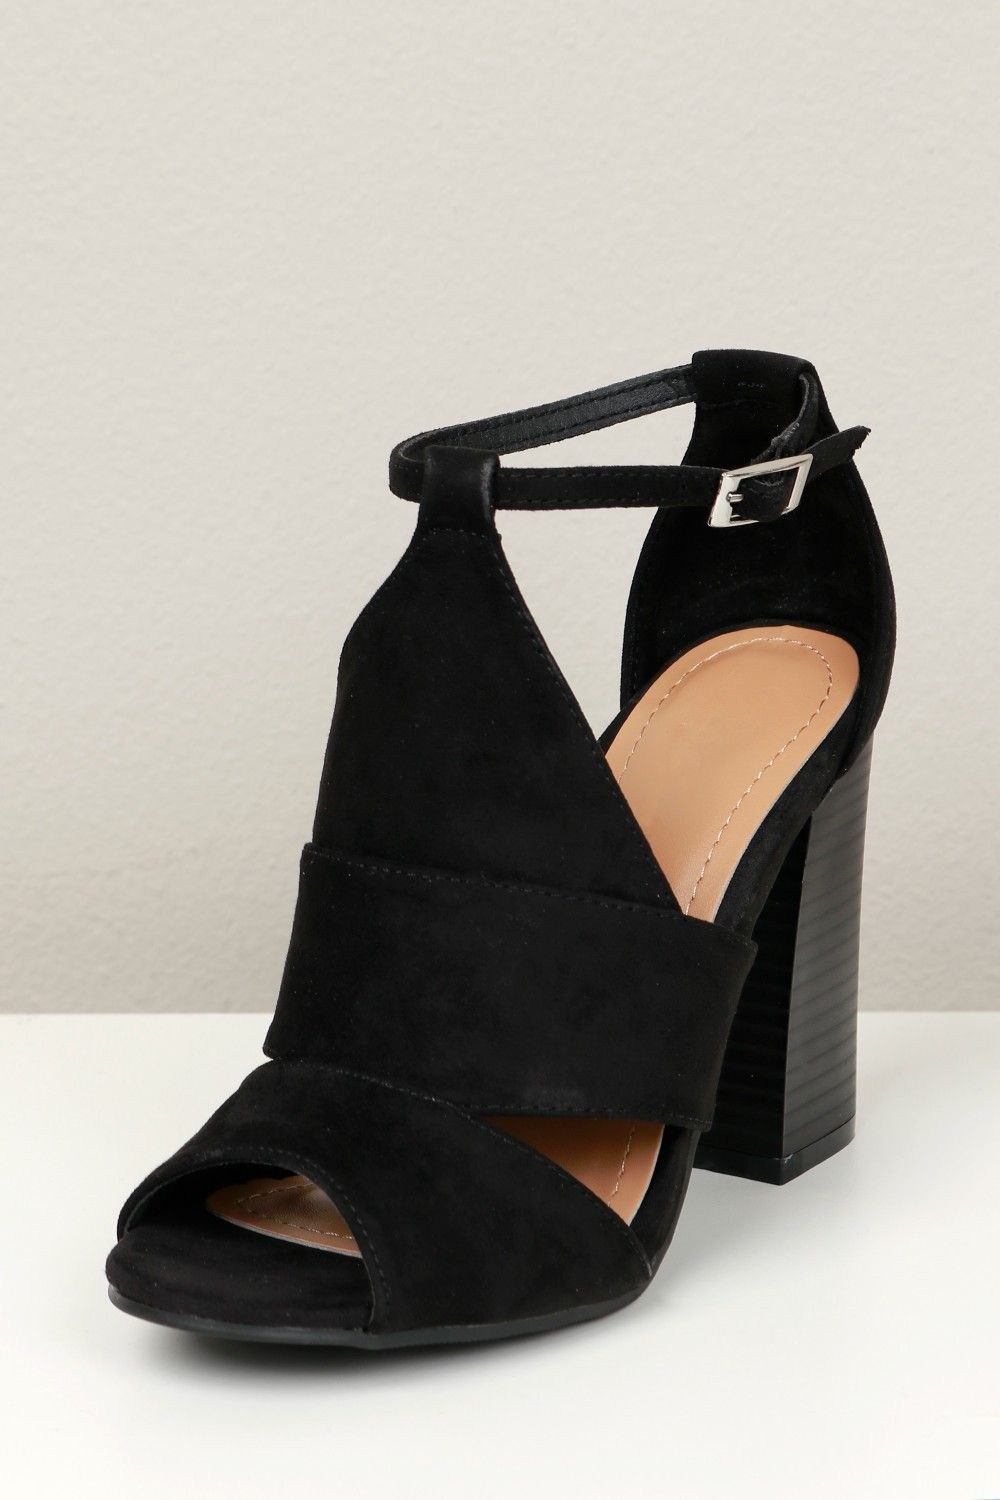 b6a7638ed842 Cut Out Peep Toe Heel Black